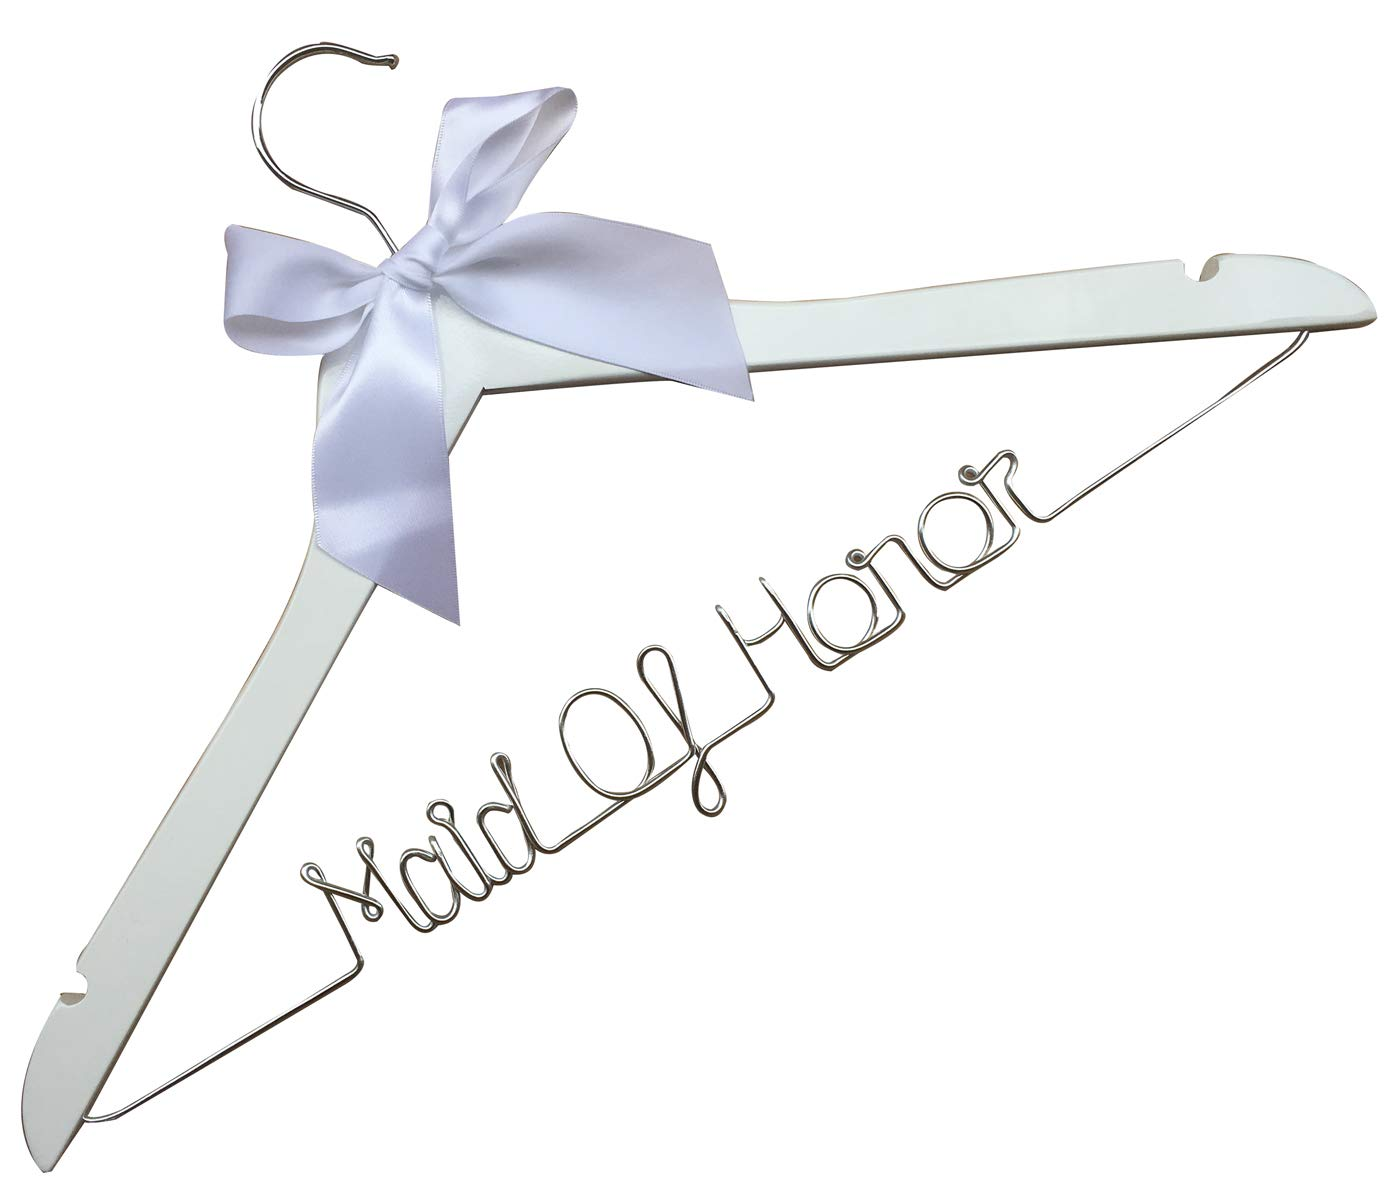 Maid of Honor Personalized Wedding Hangers-Custom Personalized Bridal Dress Hanger Gifts for Bride Mother of the Bride's Gifts gifts for groom etnecklace